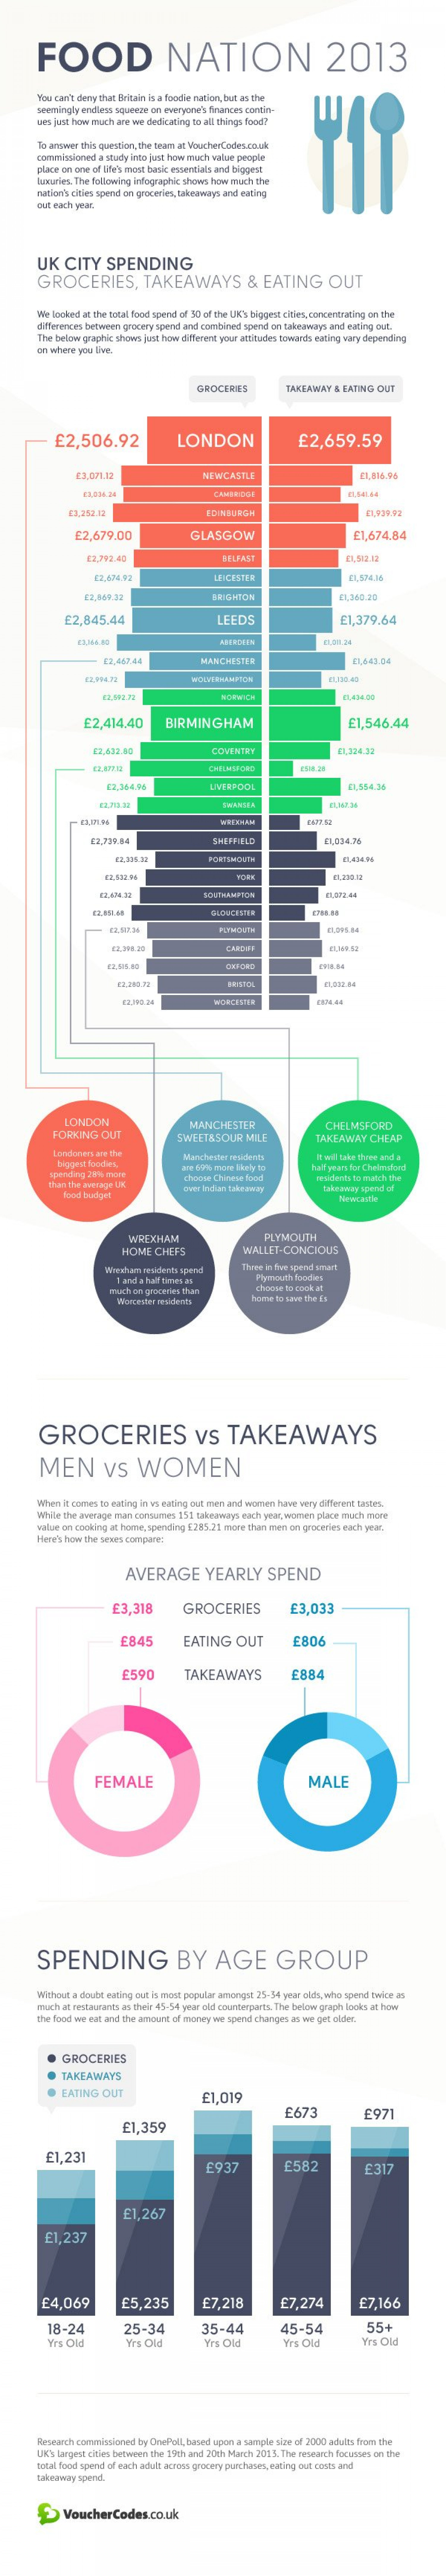 Food Nation 2013 Infographic